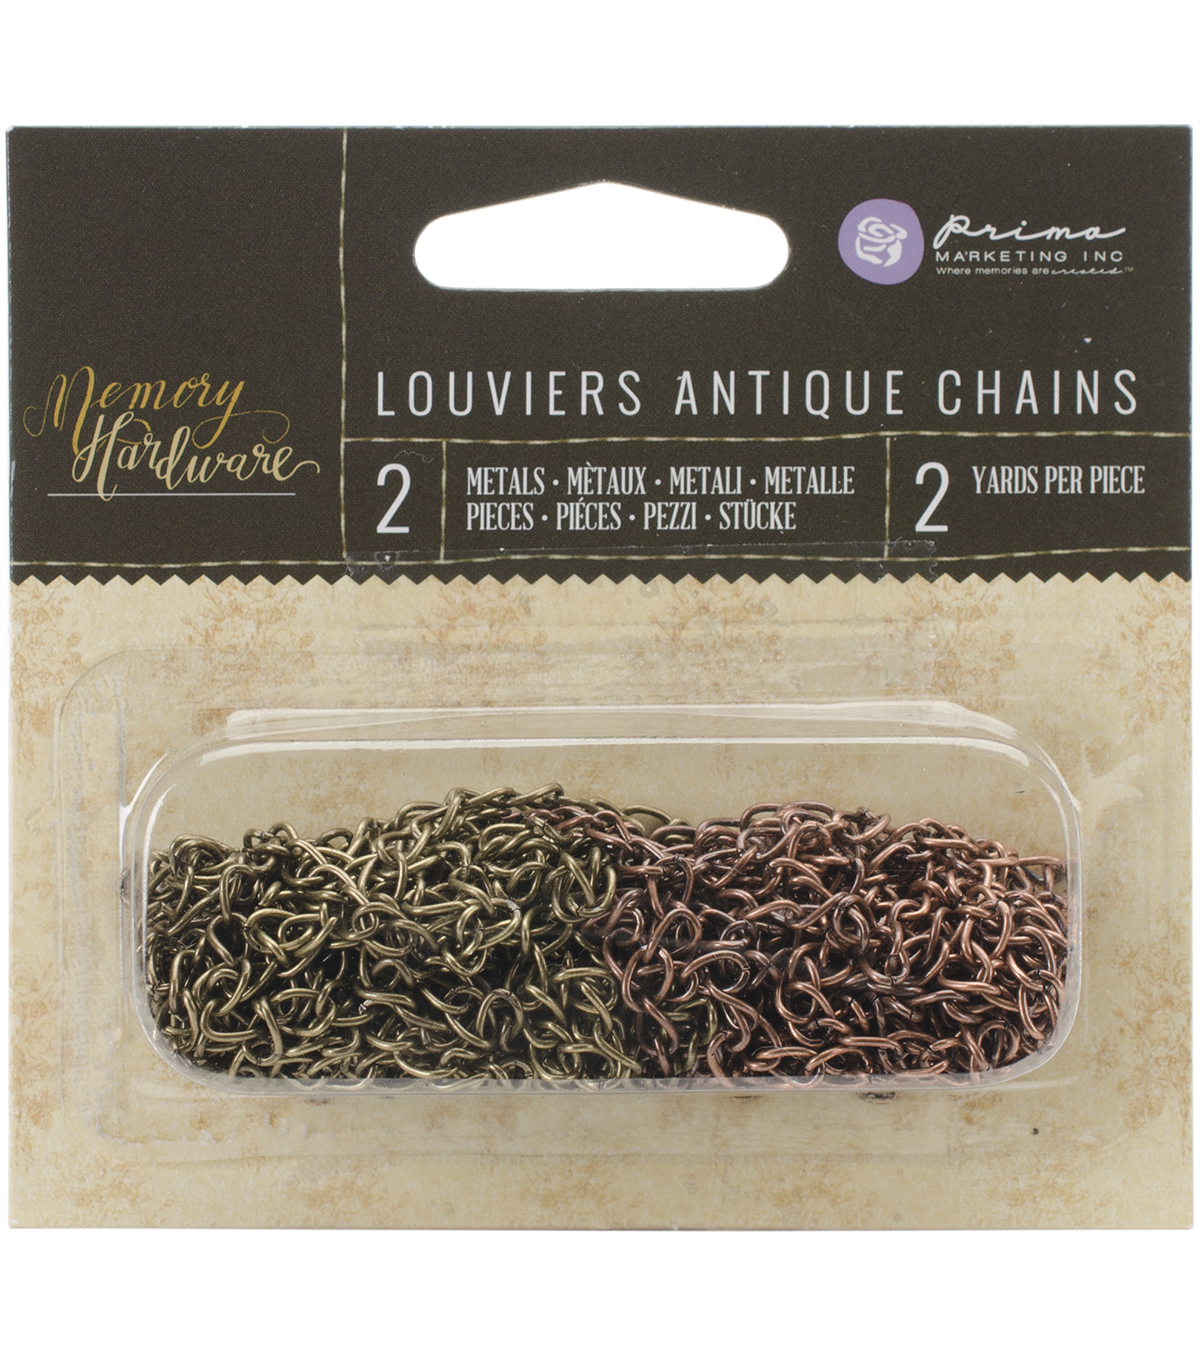 Prima Marketing Memory Hardware Louviers Antique Chains Embellishments